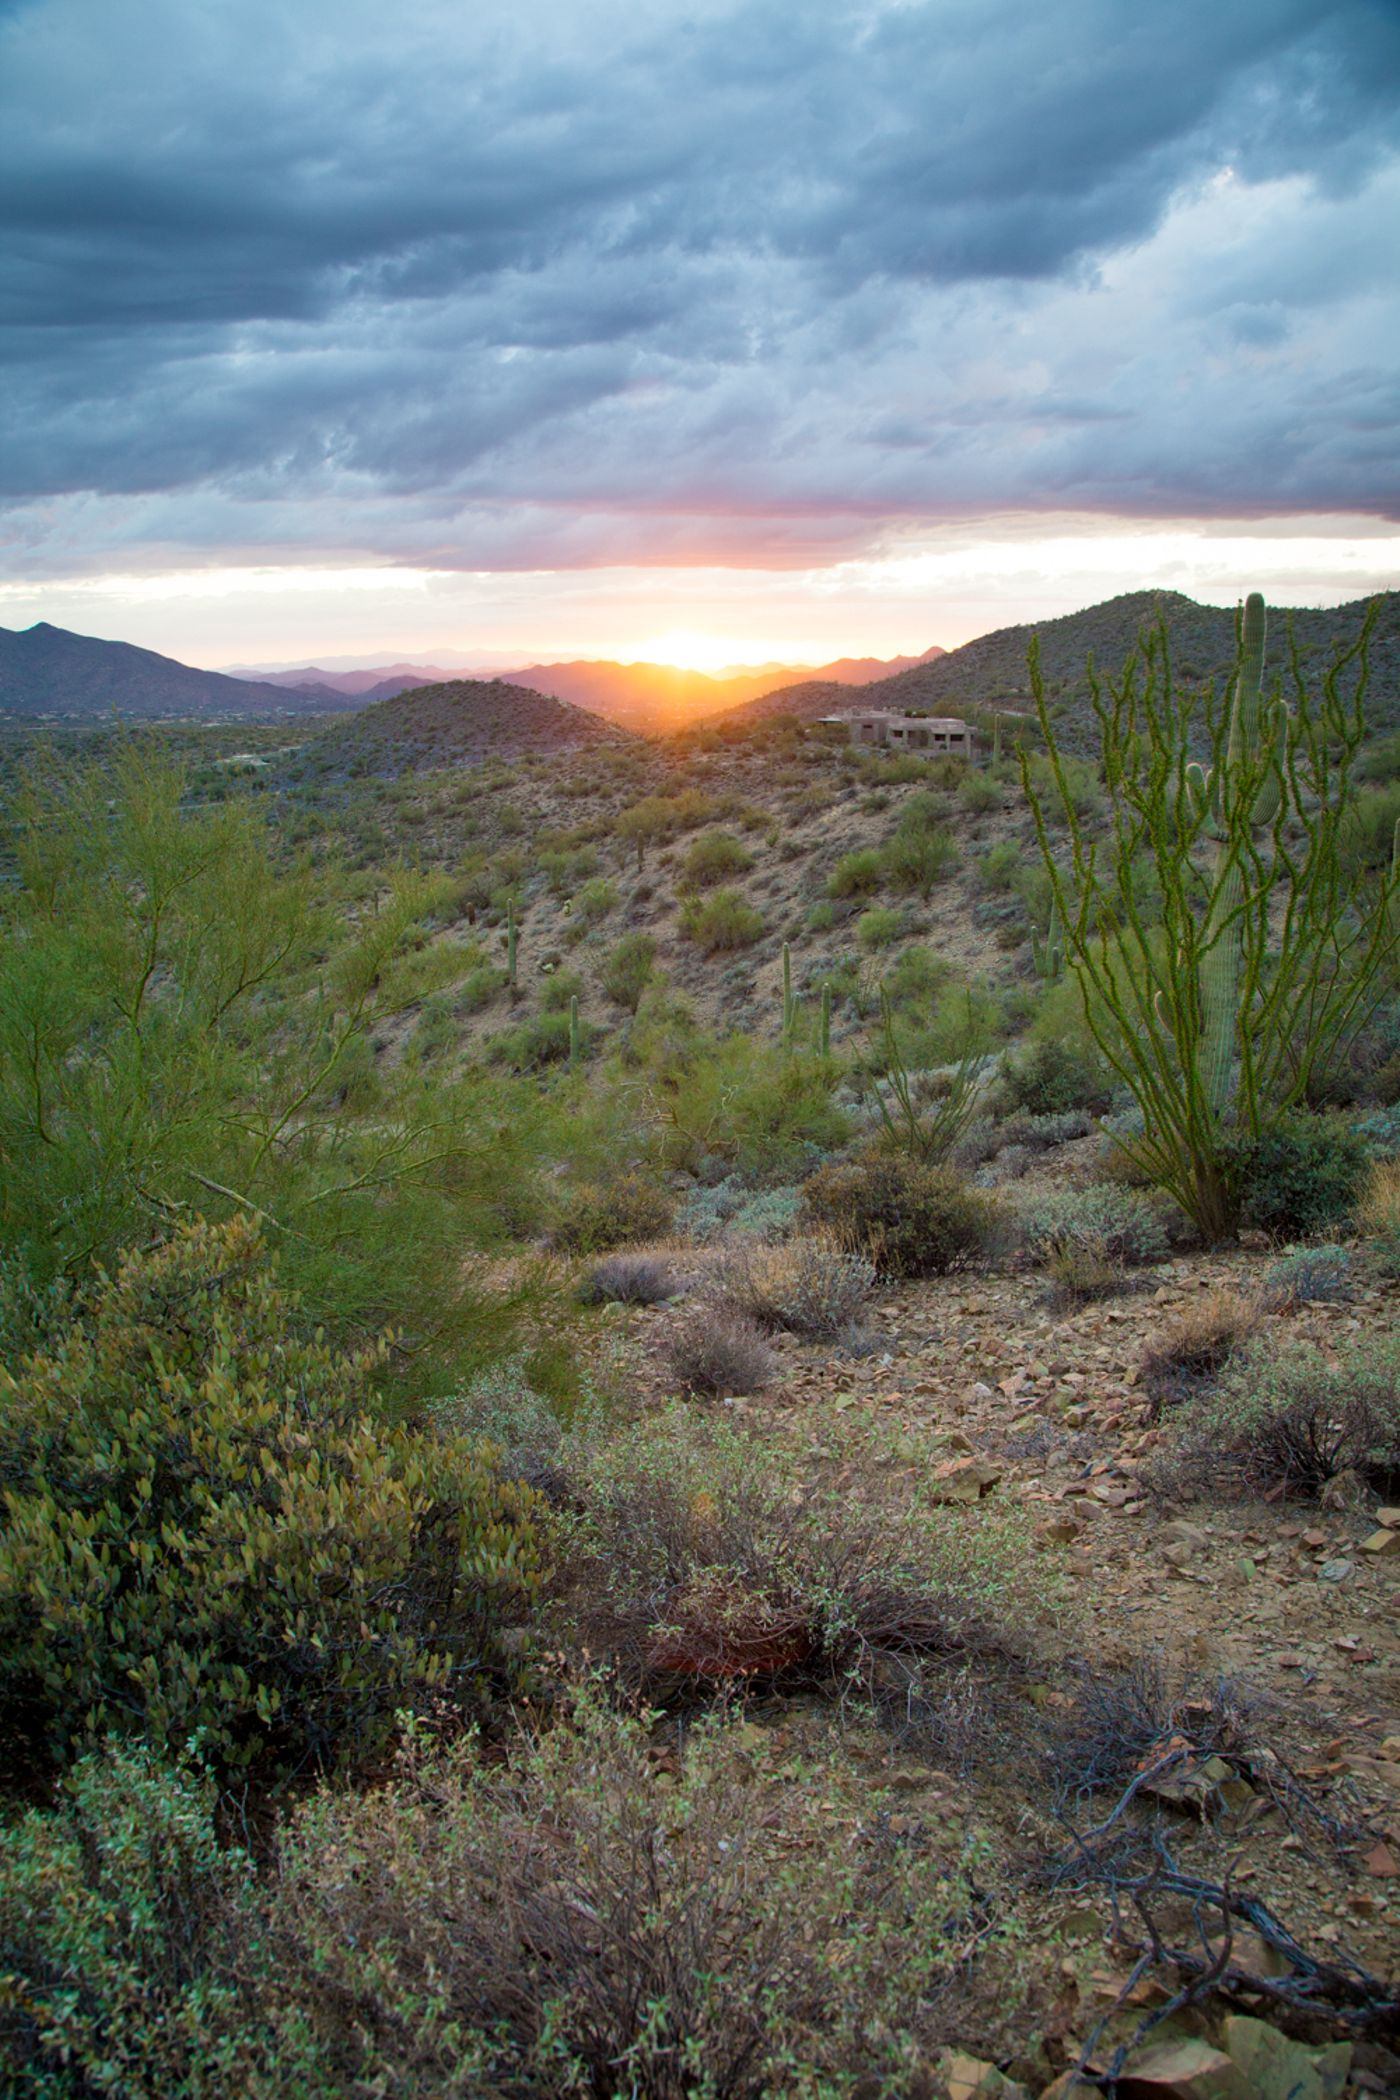 View at dusk from Carefree RAnch Homesteads